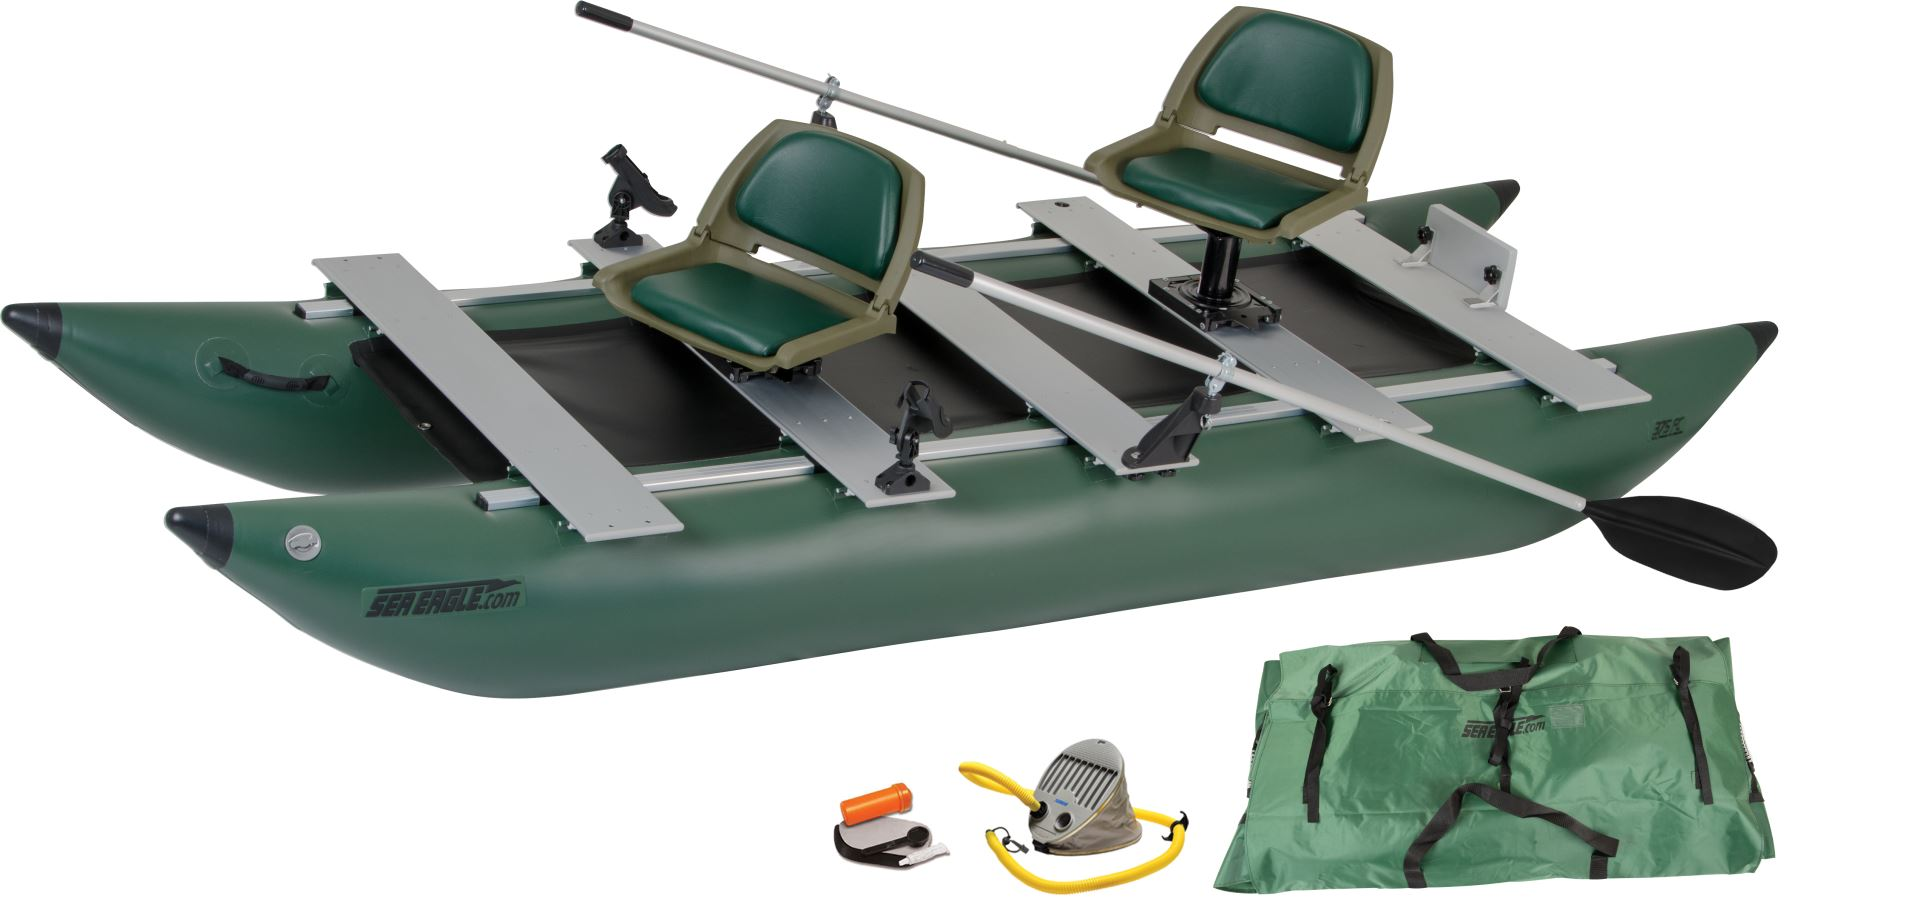 deluxe foldcat inflatable fishing boat sea eagle